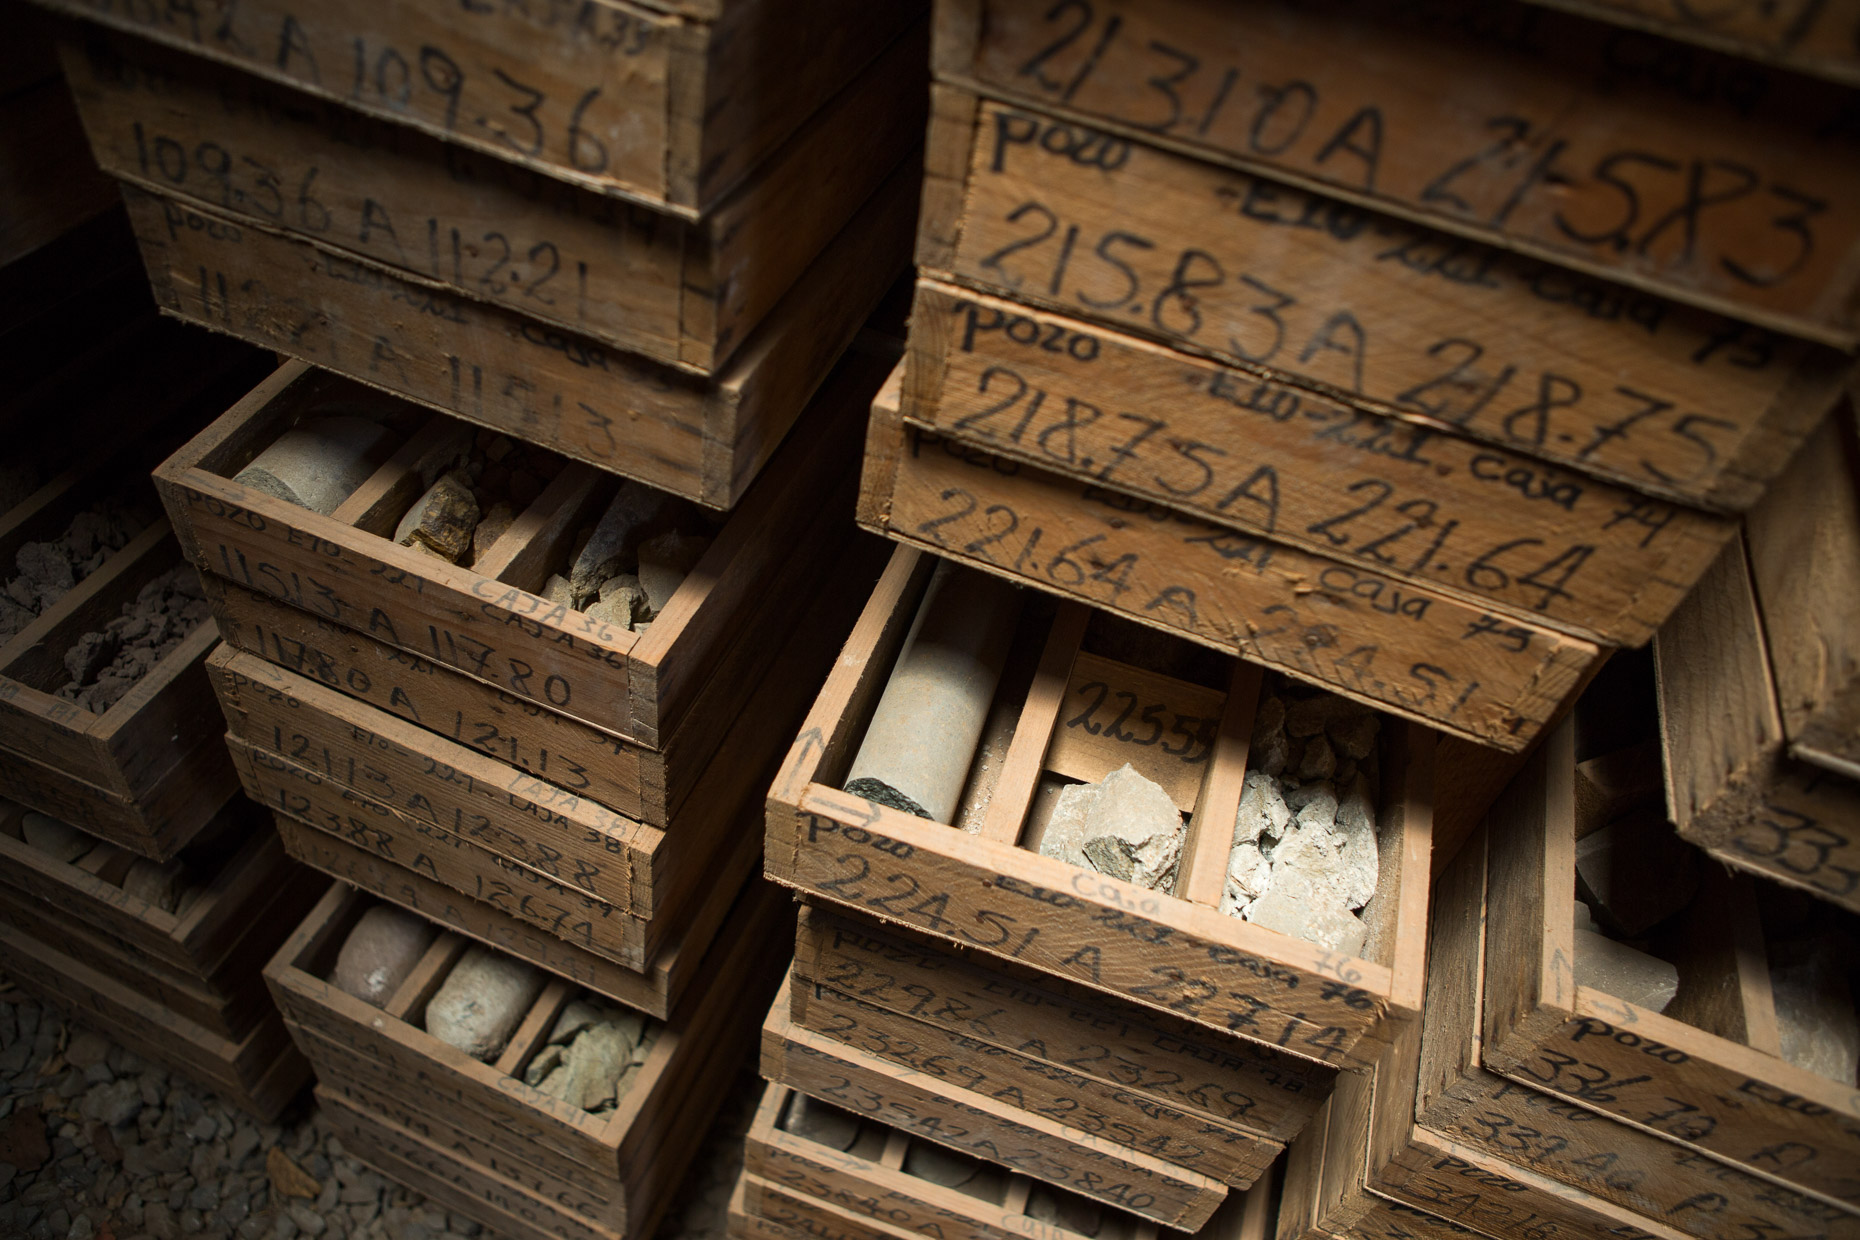 Boxes of core samples from mining exploration.